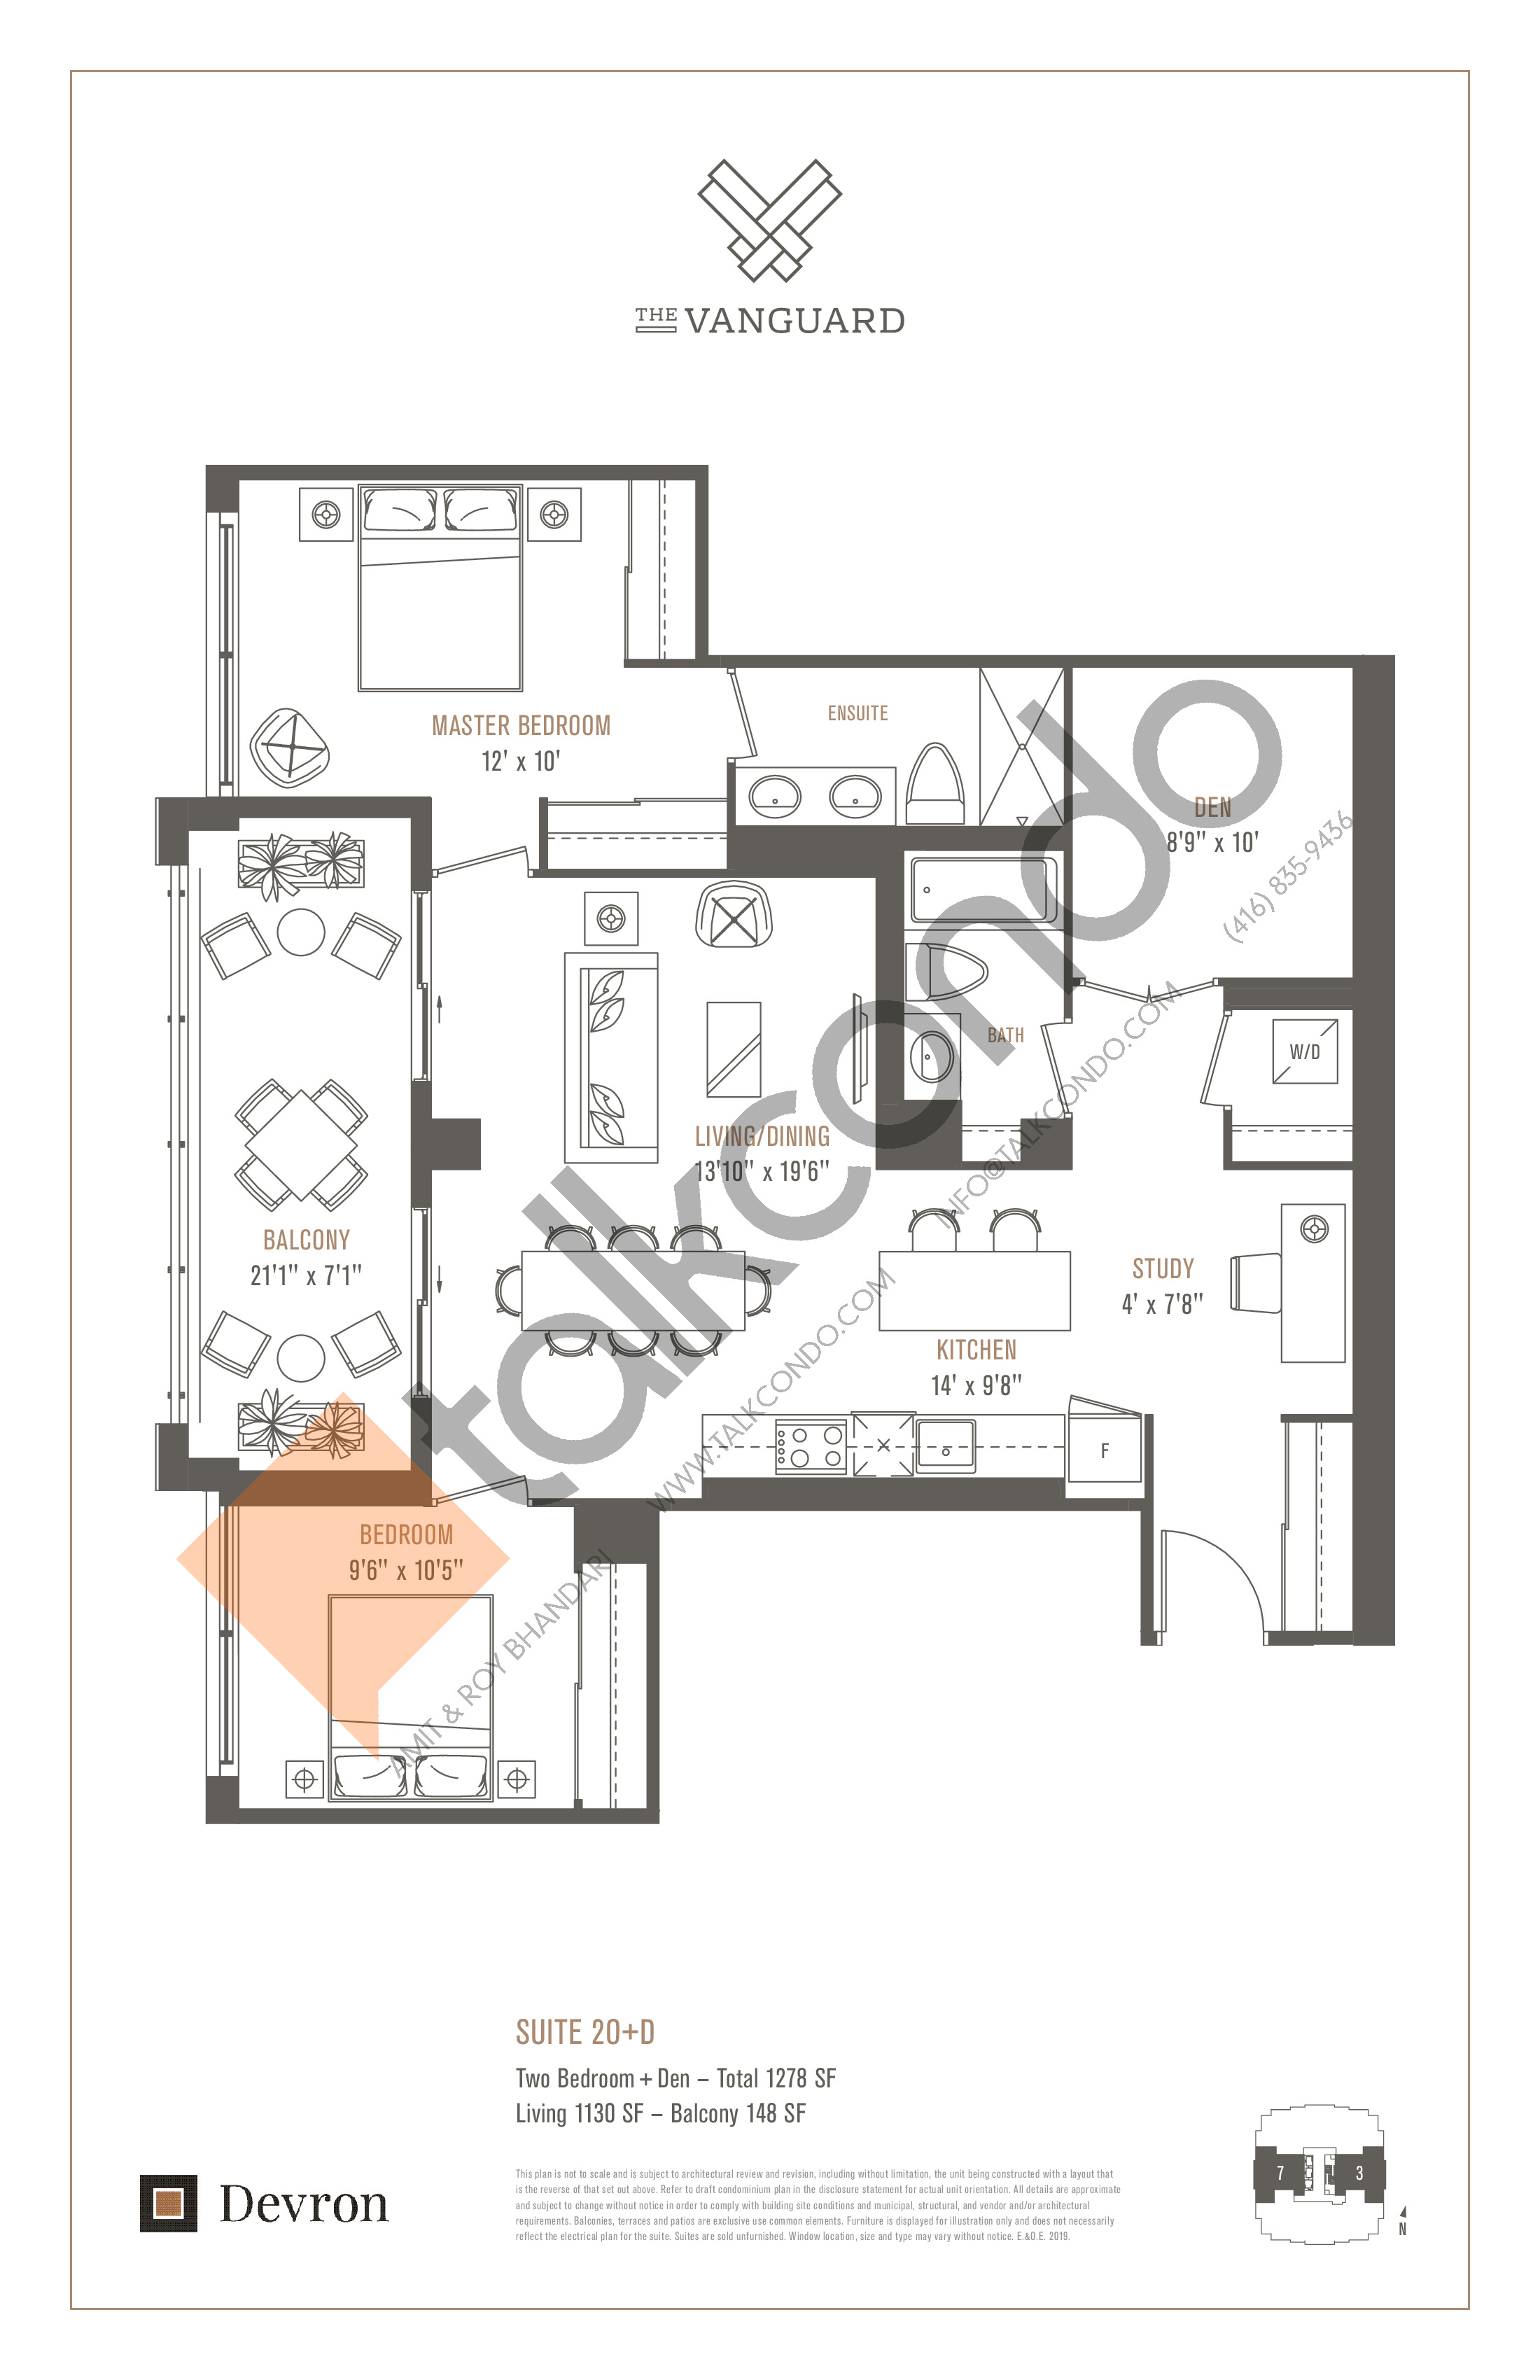 Suite 2O+D Floor Plan at The Vanguard - 1130 sq.ft